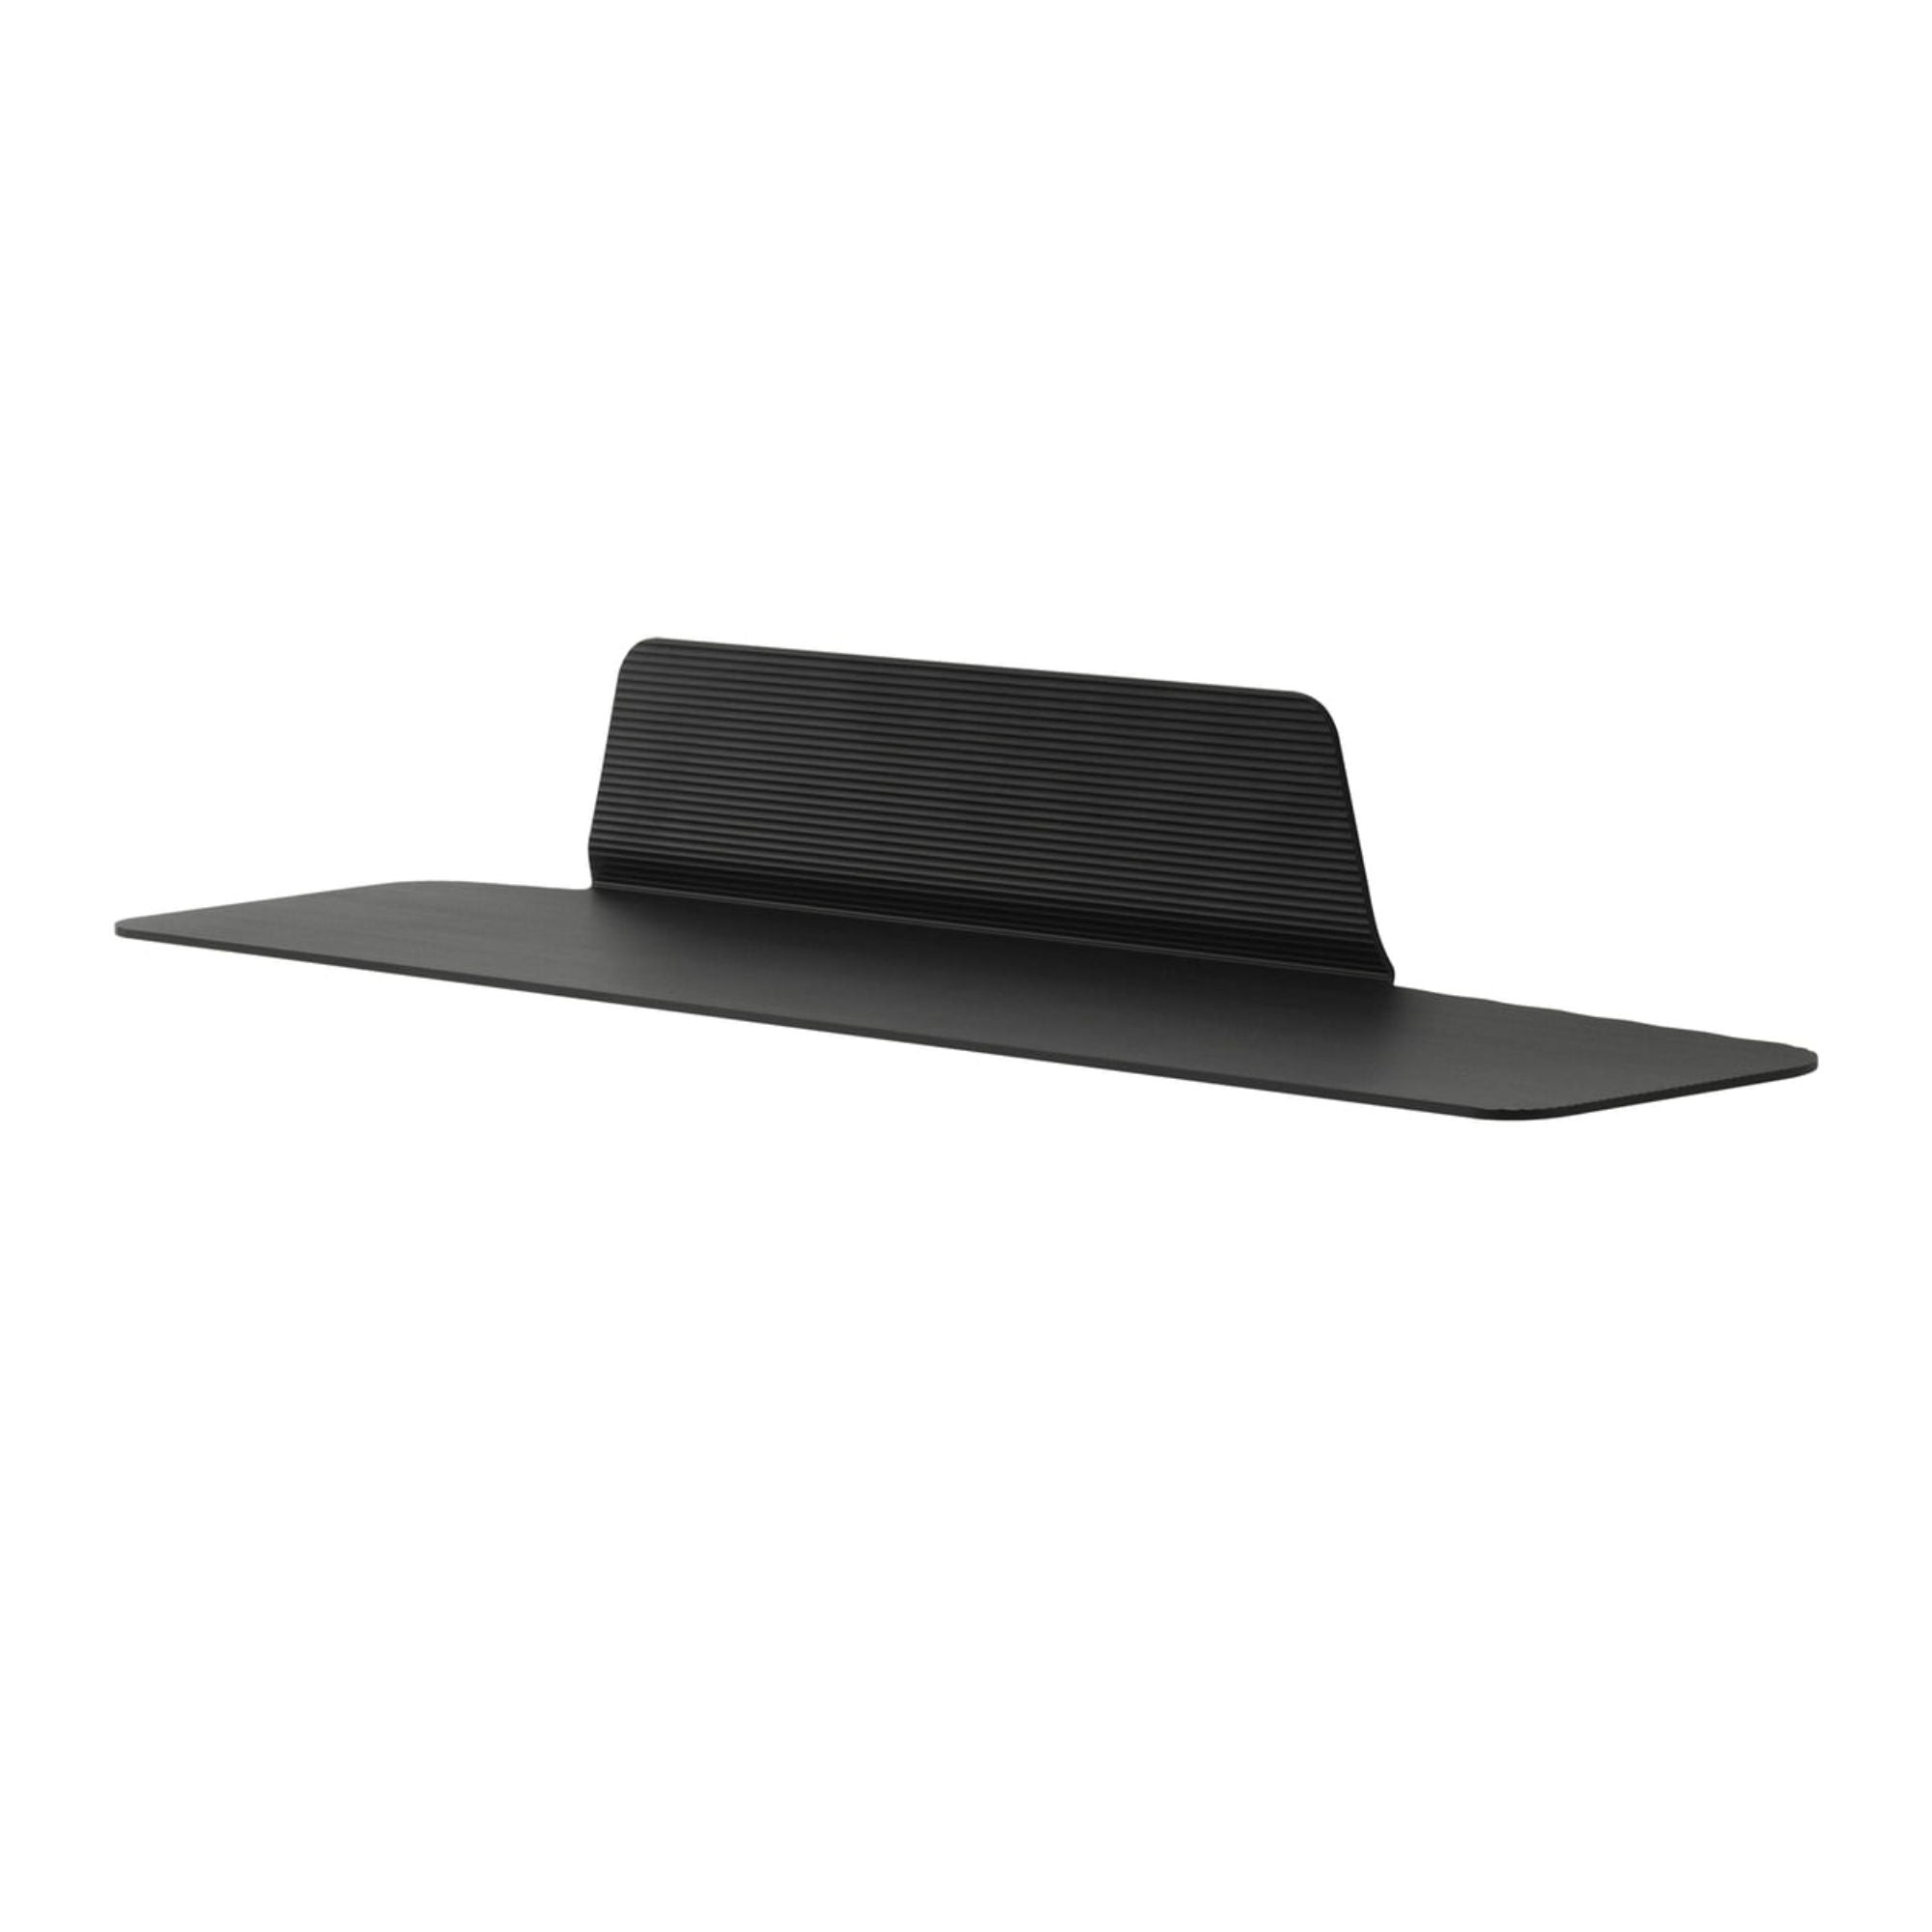 Normann Copenhagen Jet Wall Shelf 80cm , Black